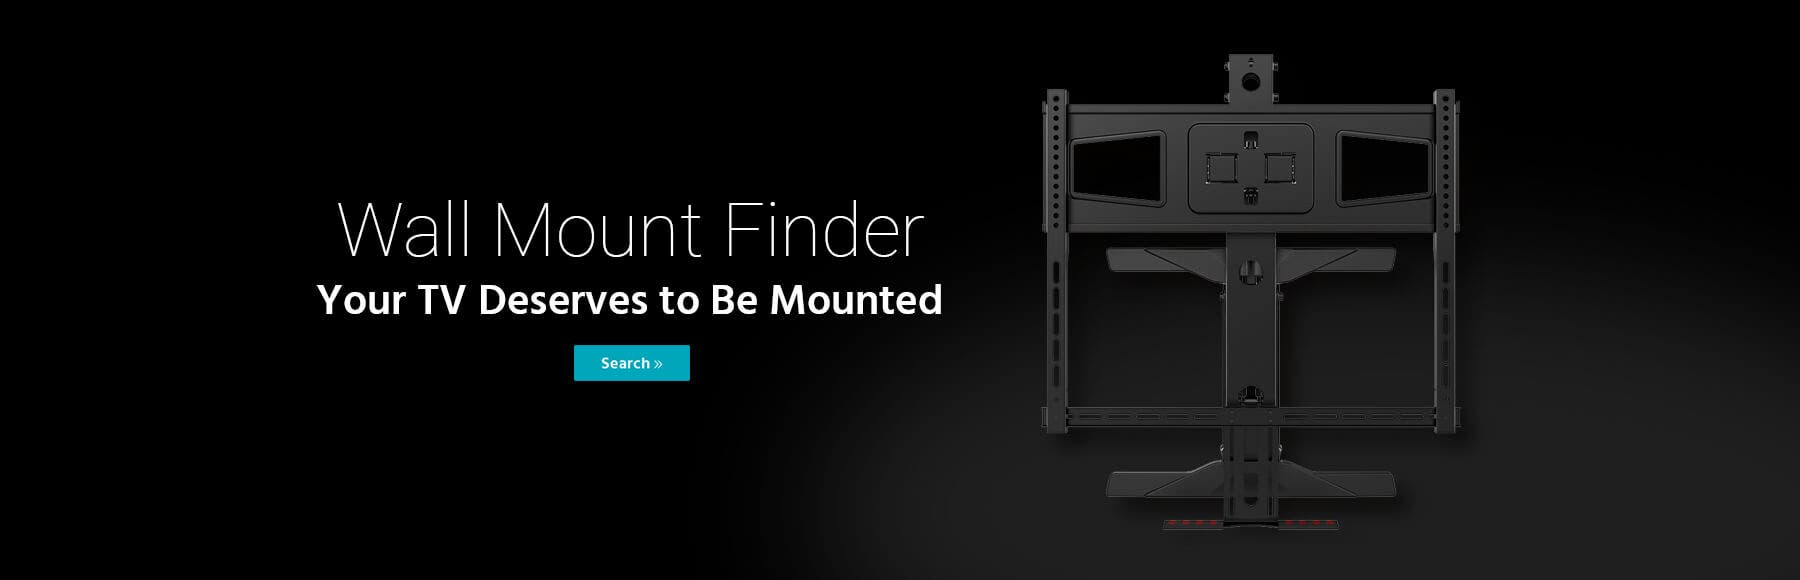 Wall Mount Finder